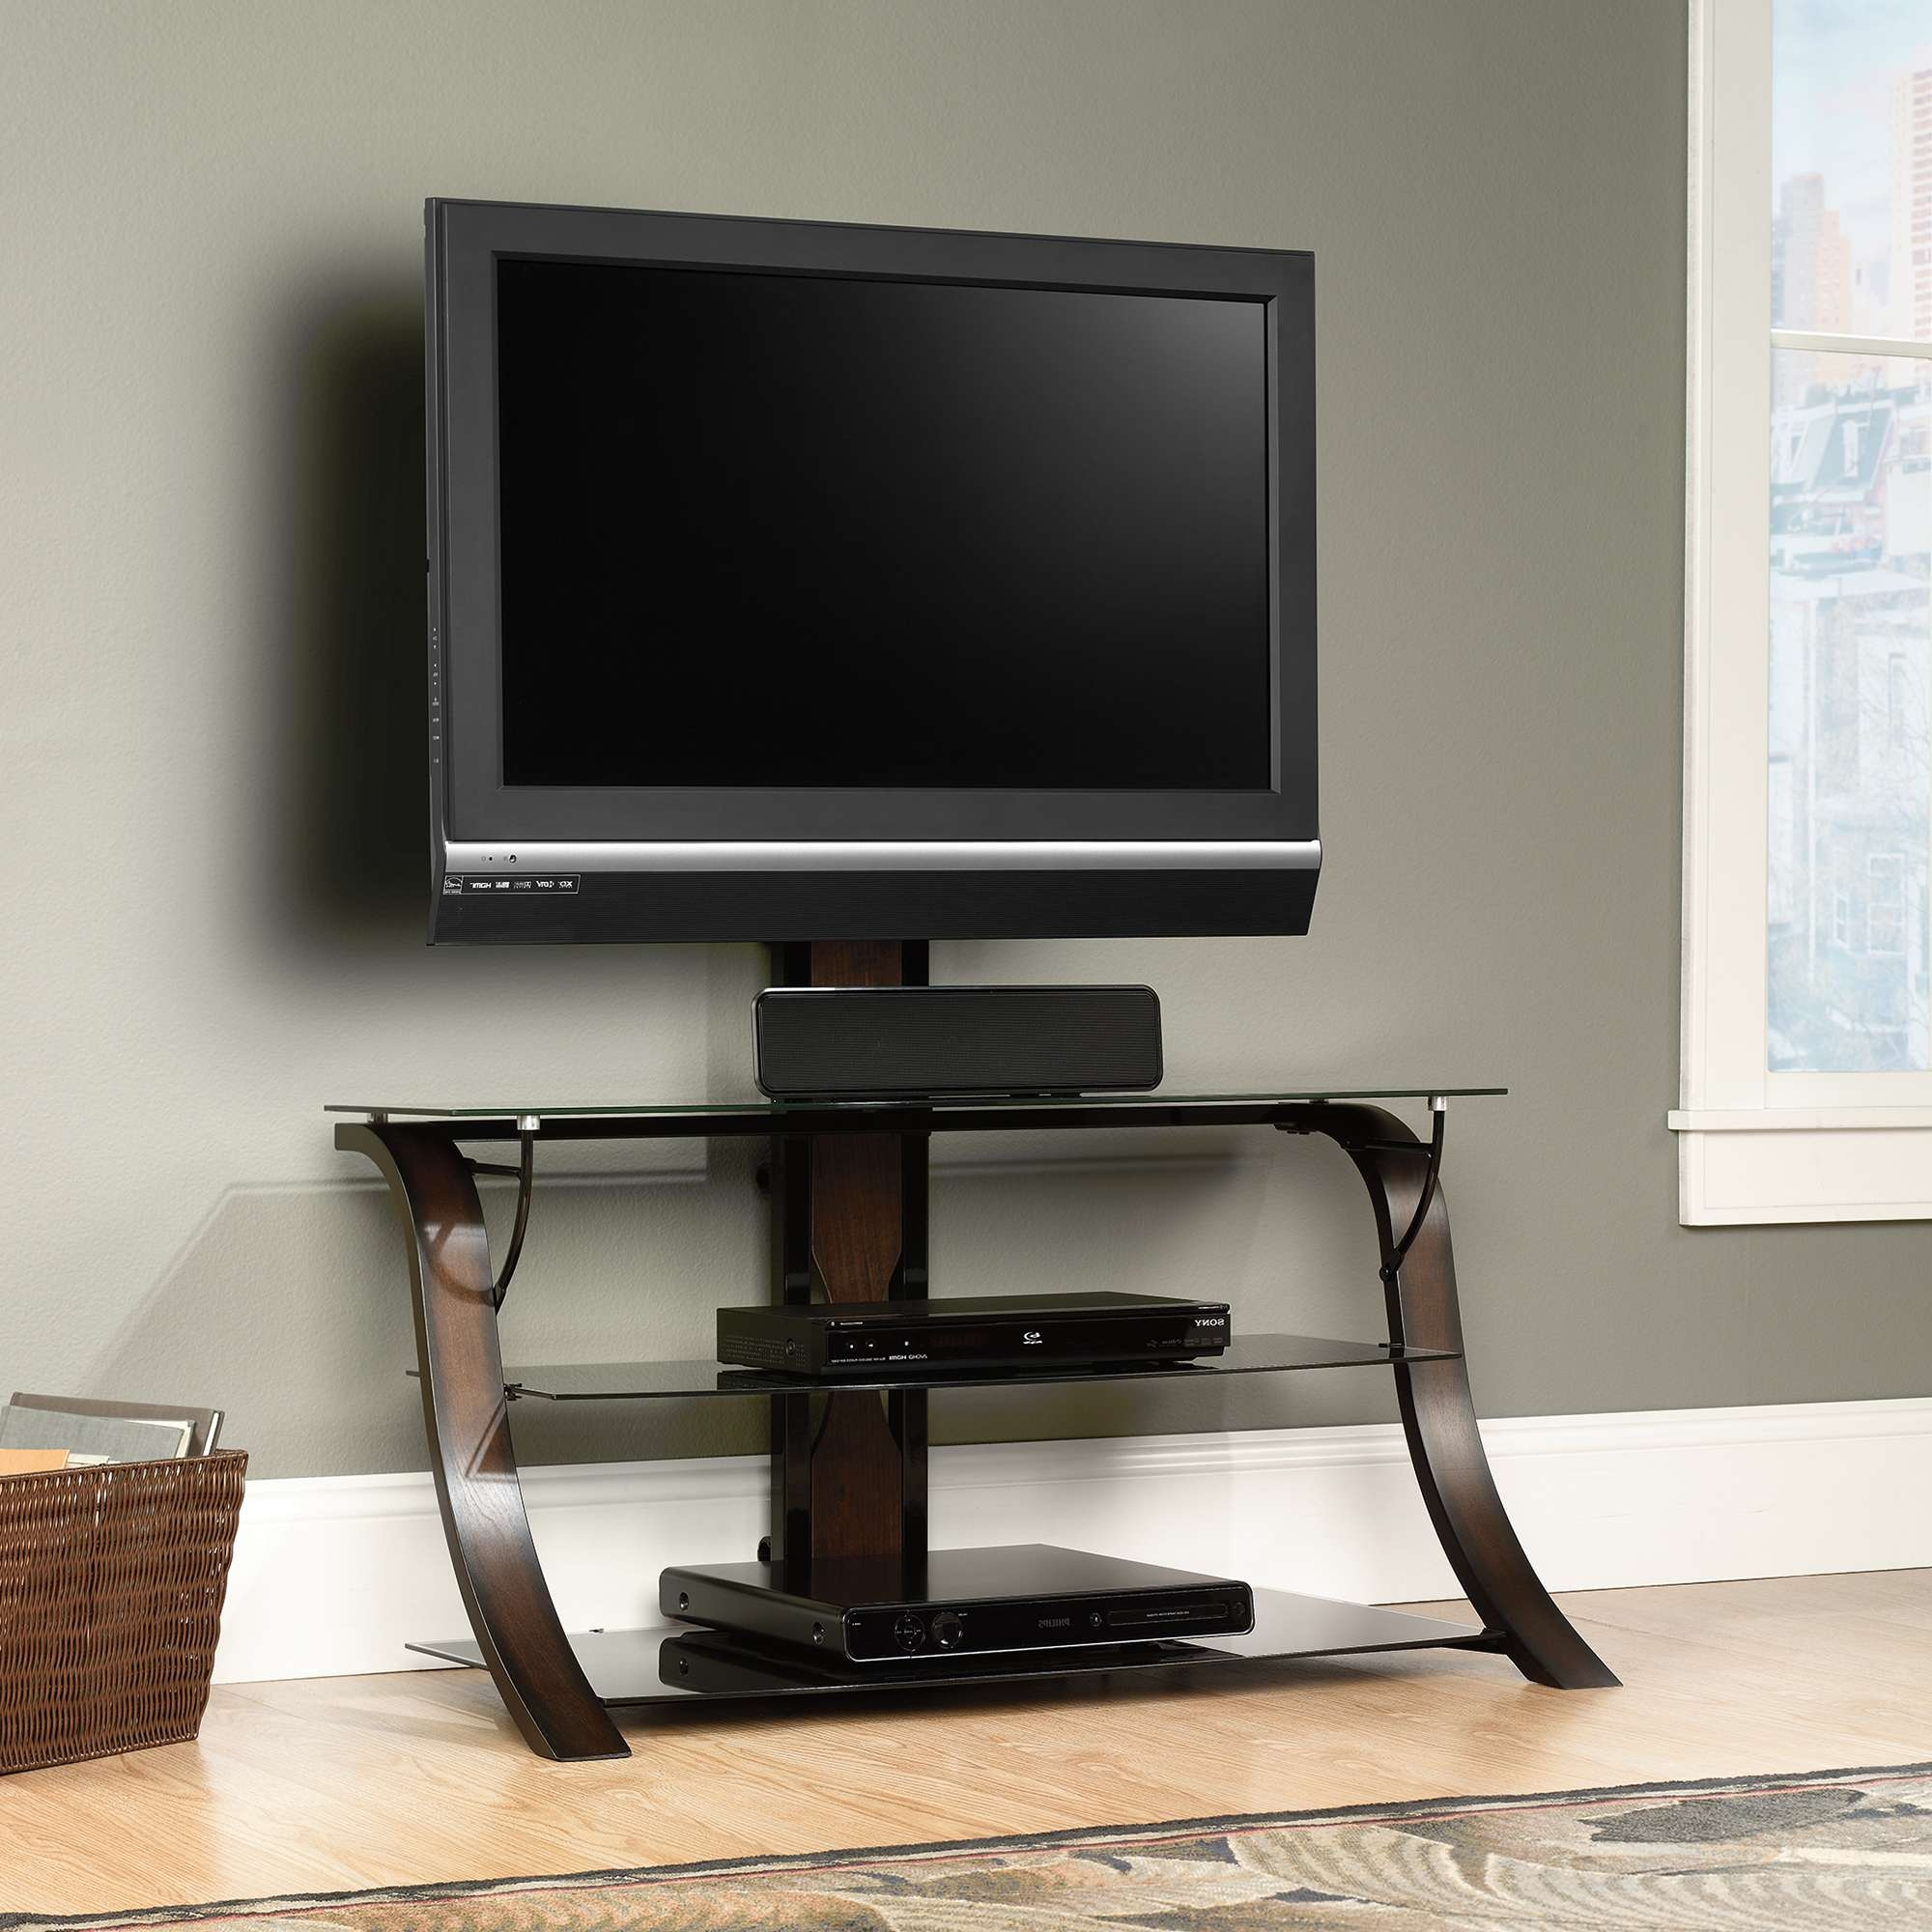 Sauder Select | Veer Tv Stand With Mount | 413906 | Sauder With Regard To Wooden Tv Stands For 50 Inch Tv (View 6 of 15)